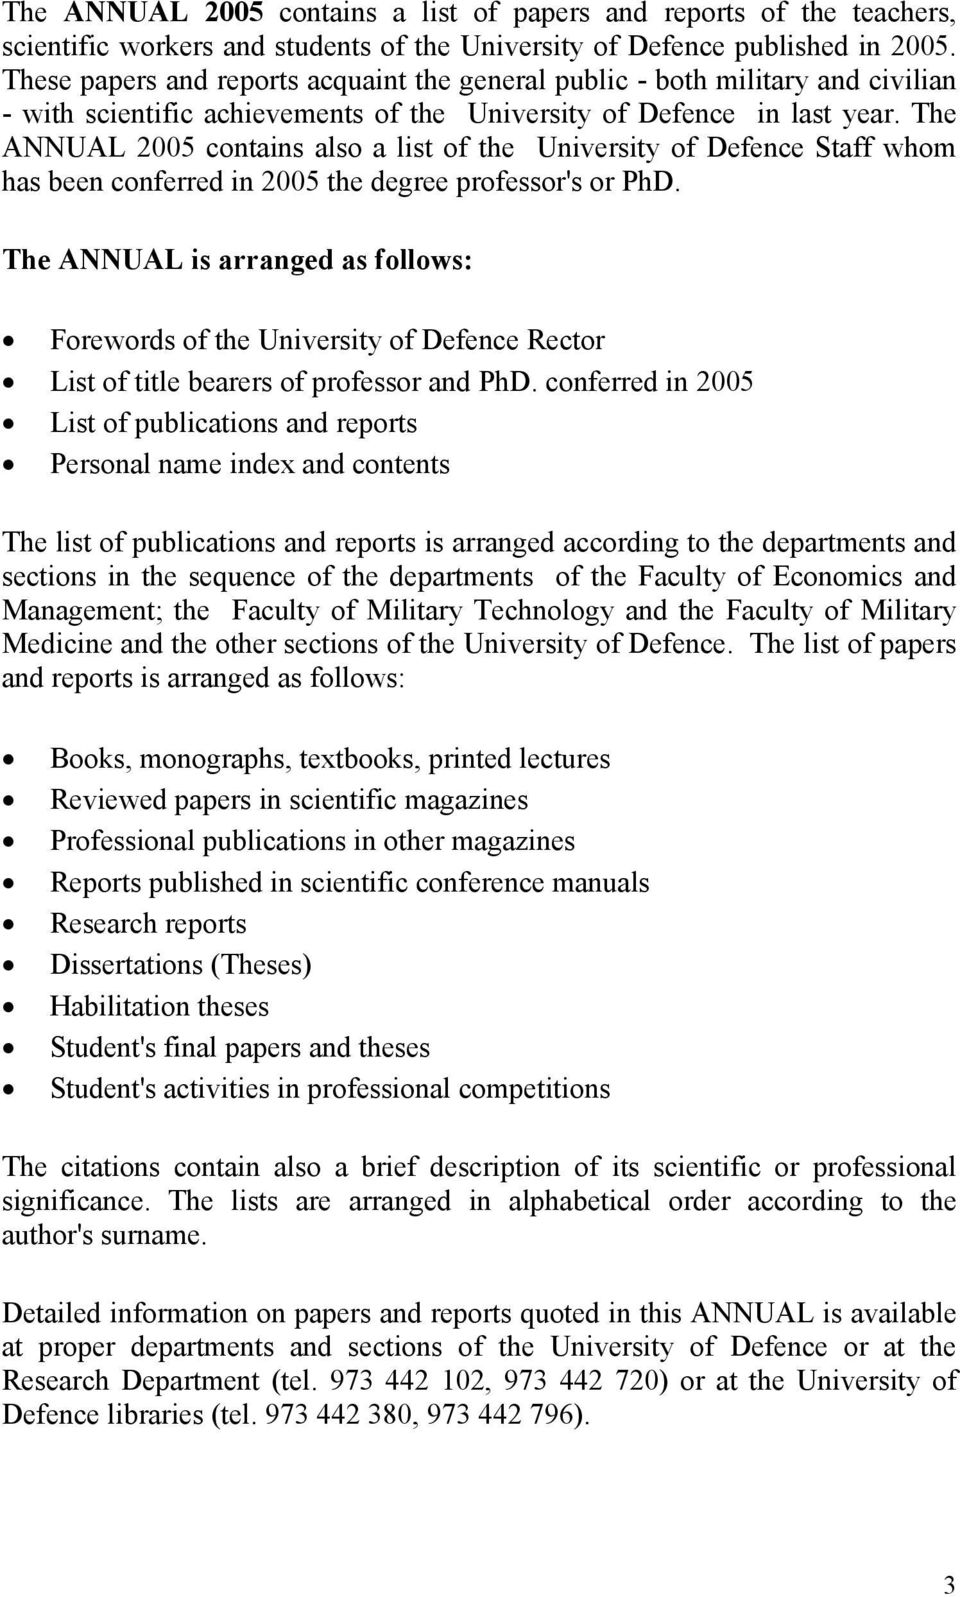 The ANNUAL 2005 contains also a list of the University of Defence Staff whom has been conferred in 2005 the degree professor's or PhD.